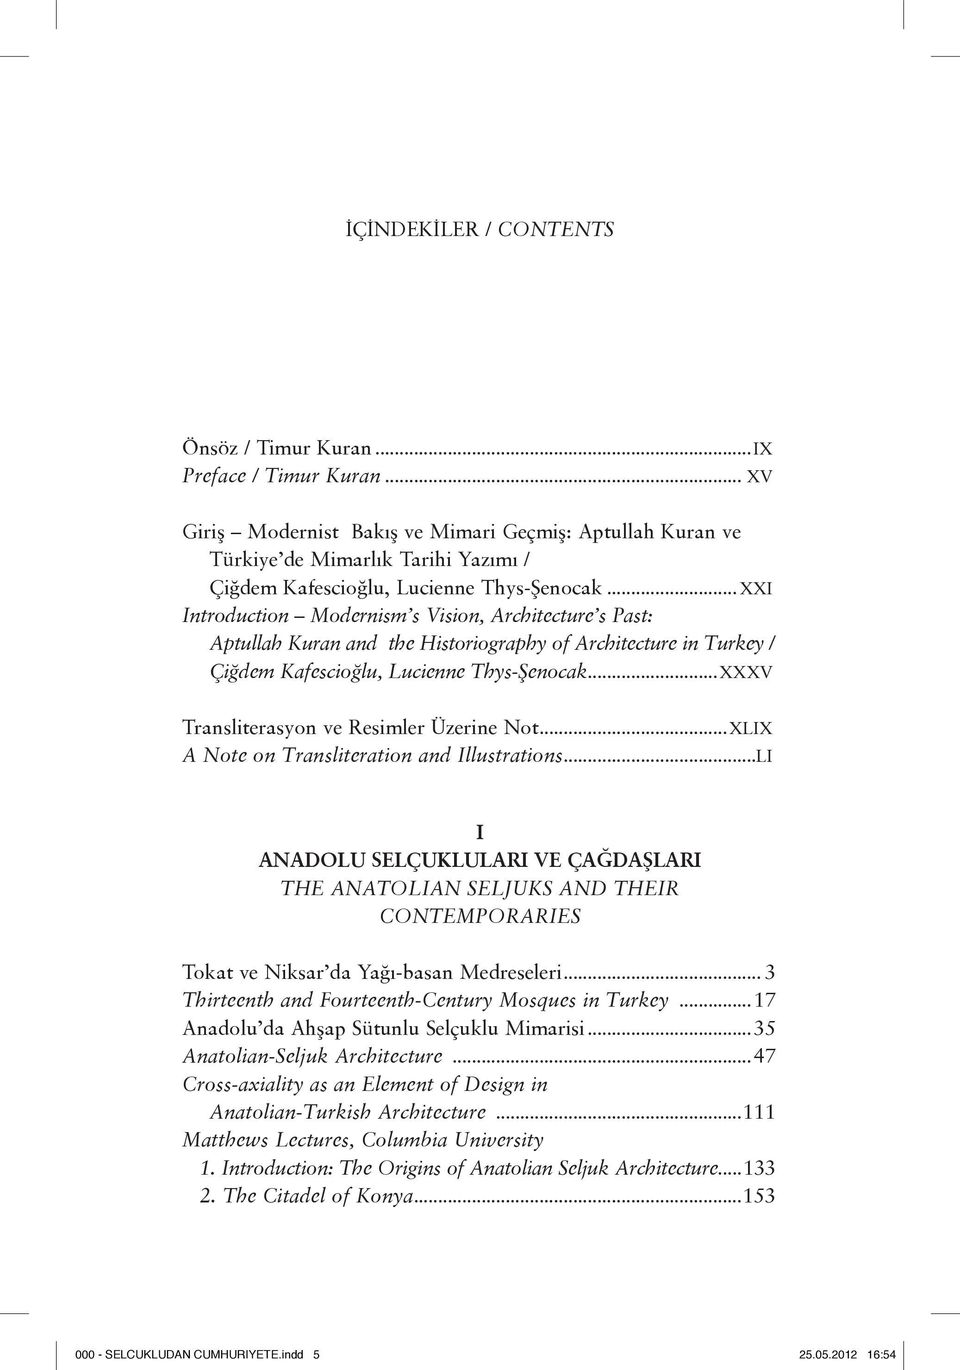 .. XXI Introduction Modernism s Vision, Architecture s Past: Aptullah Kuran and the Historiography of Architecture in Turkey / Çiğdem Kafescioğlu, Lucienne Thys-Şenocak.